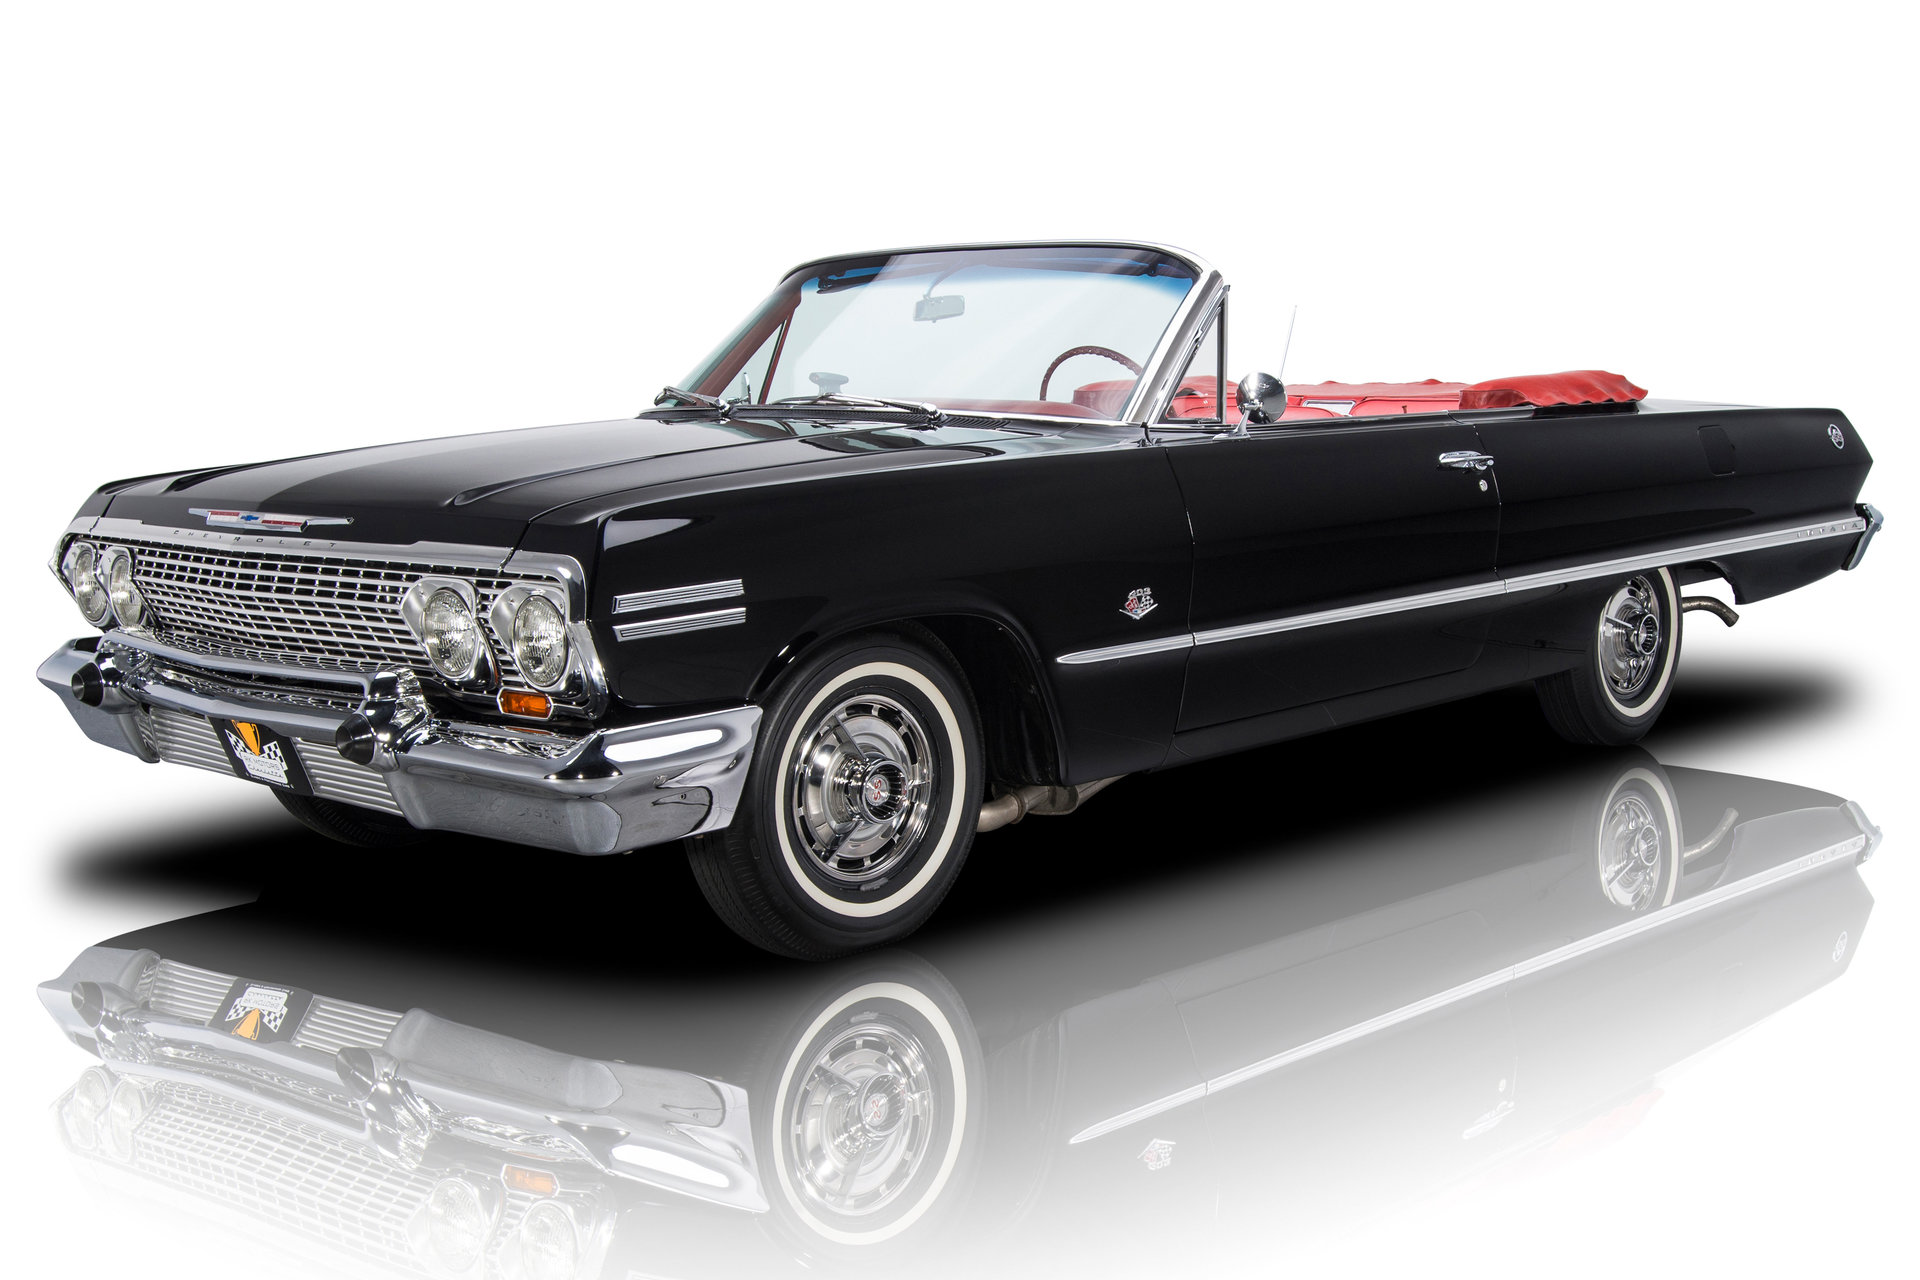 Ground Up Restored Factory Black / Red Impala SS Conv 409 Dual Quad 4spd